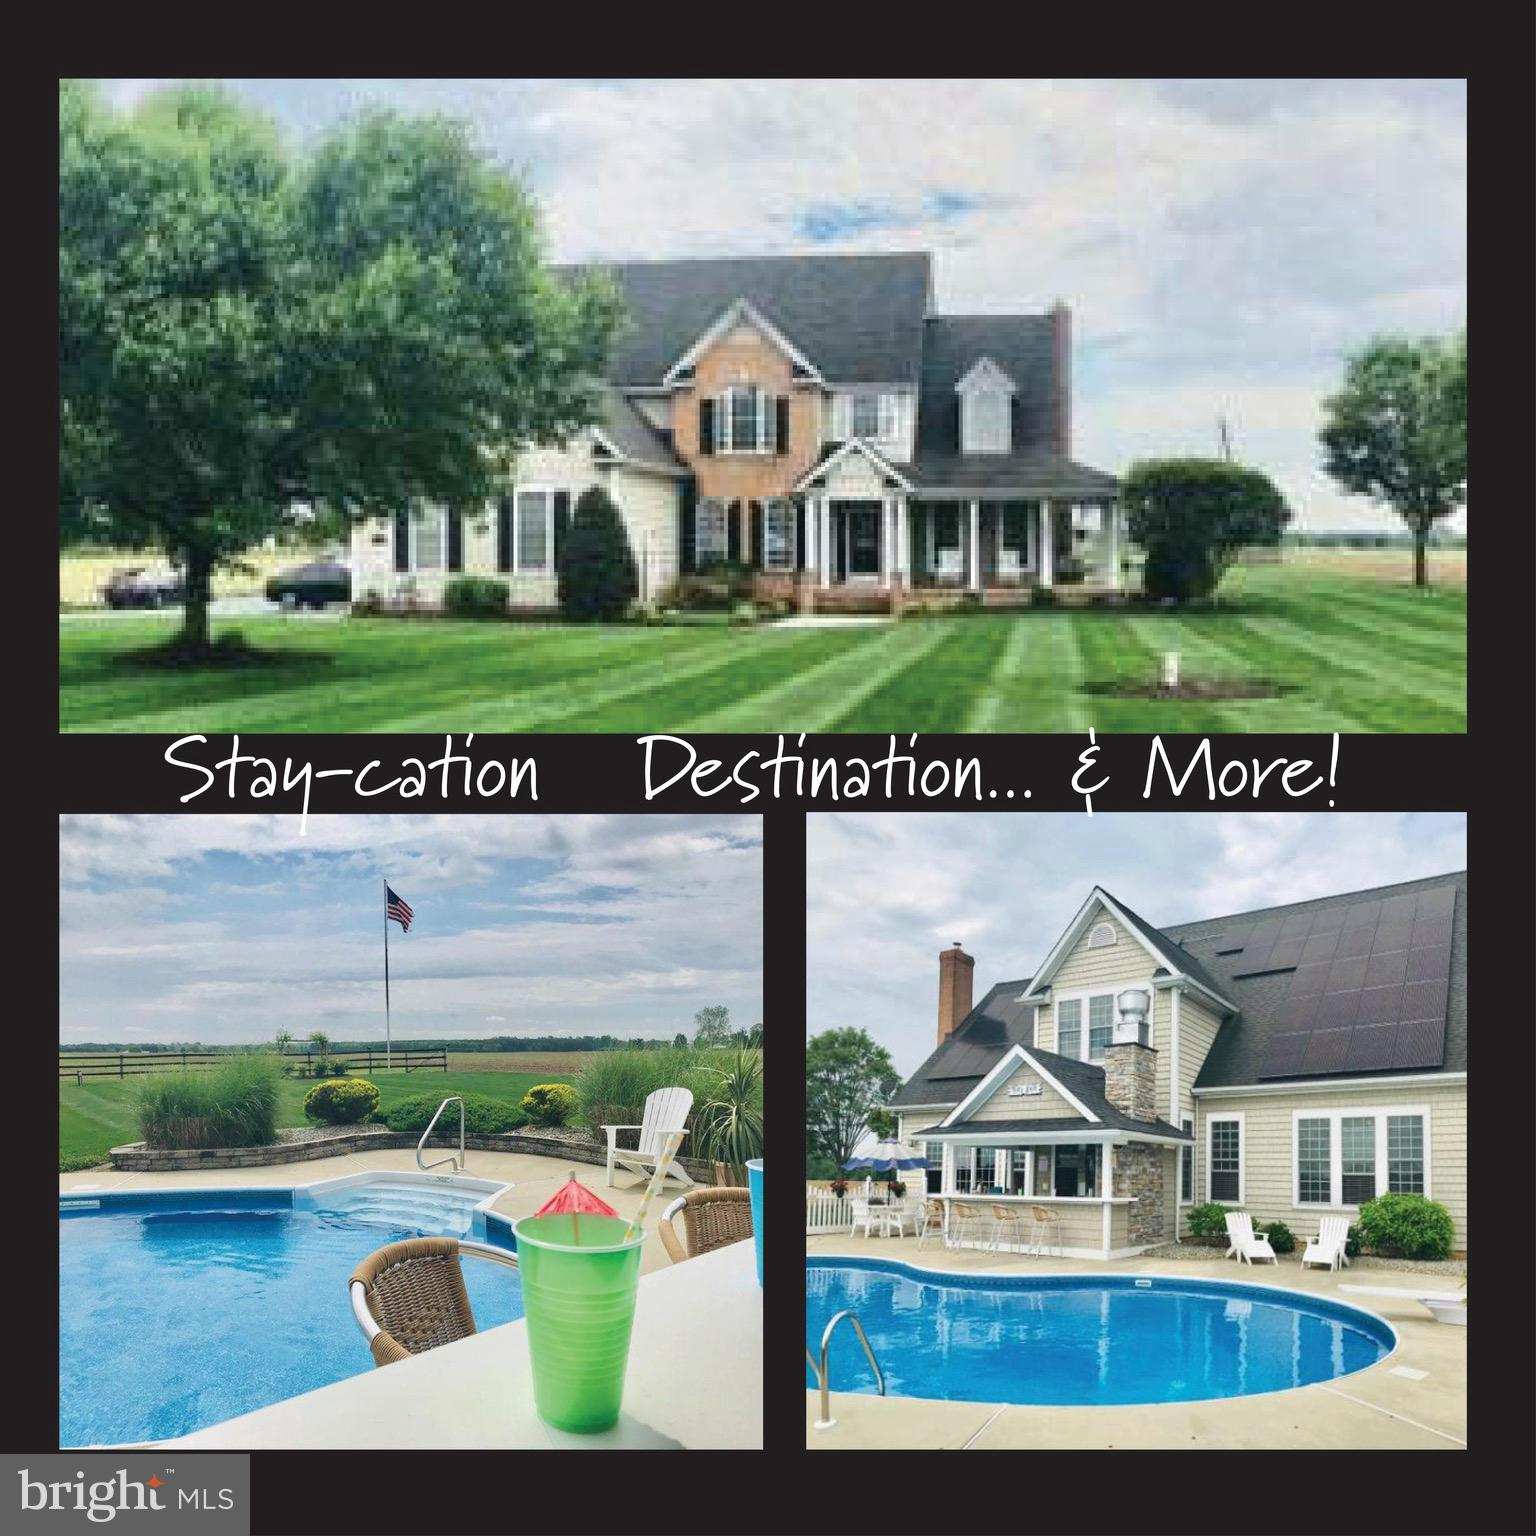 Welcome to your Stay-Cation Destination! This gorgeous 4000+ sq ft home is everything you want in a